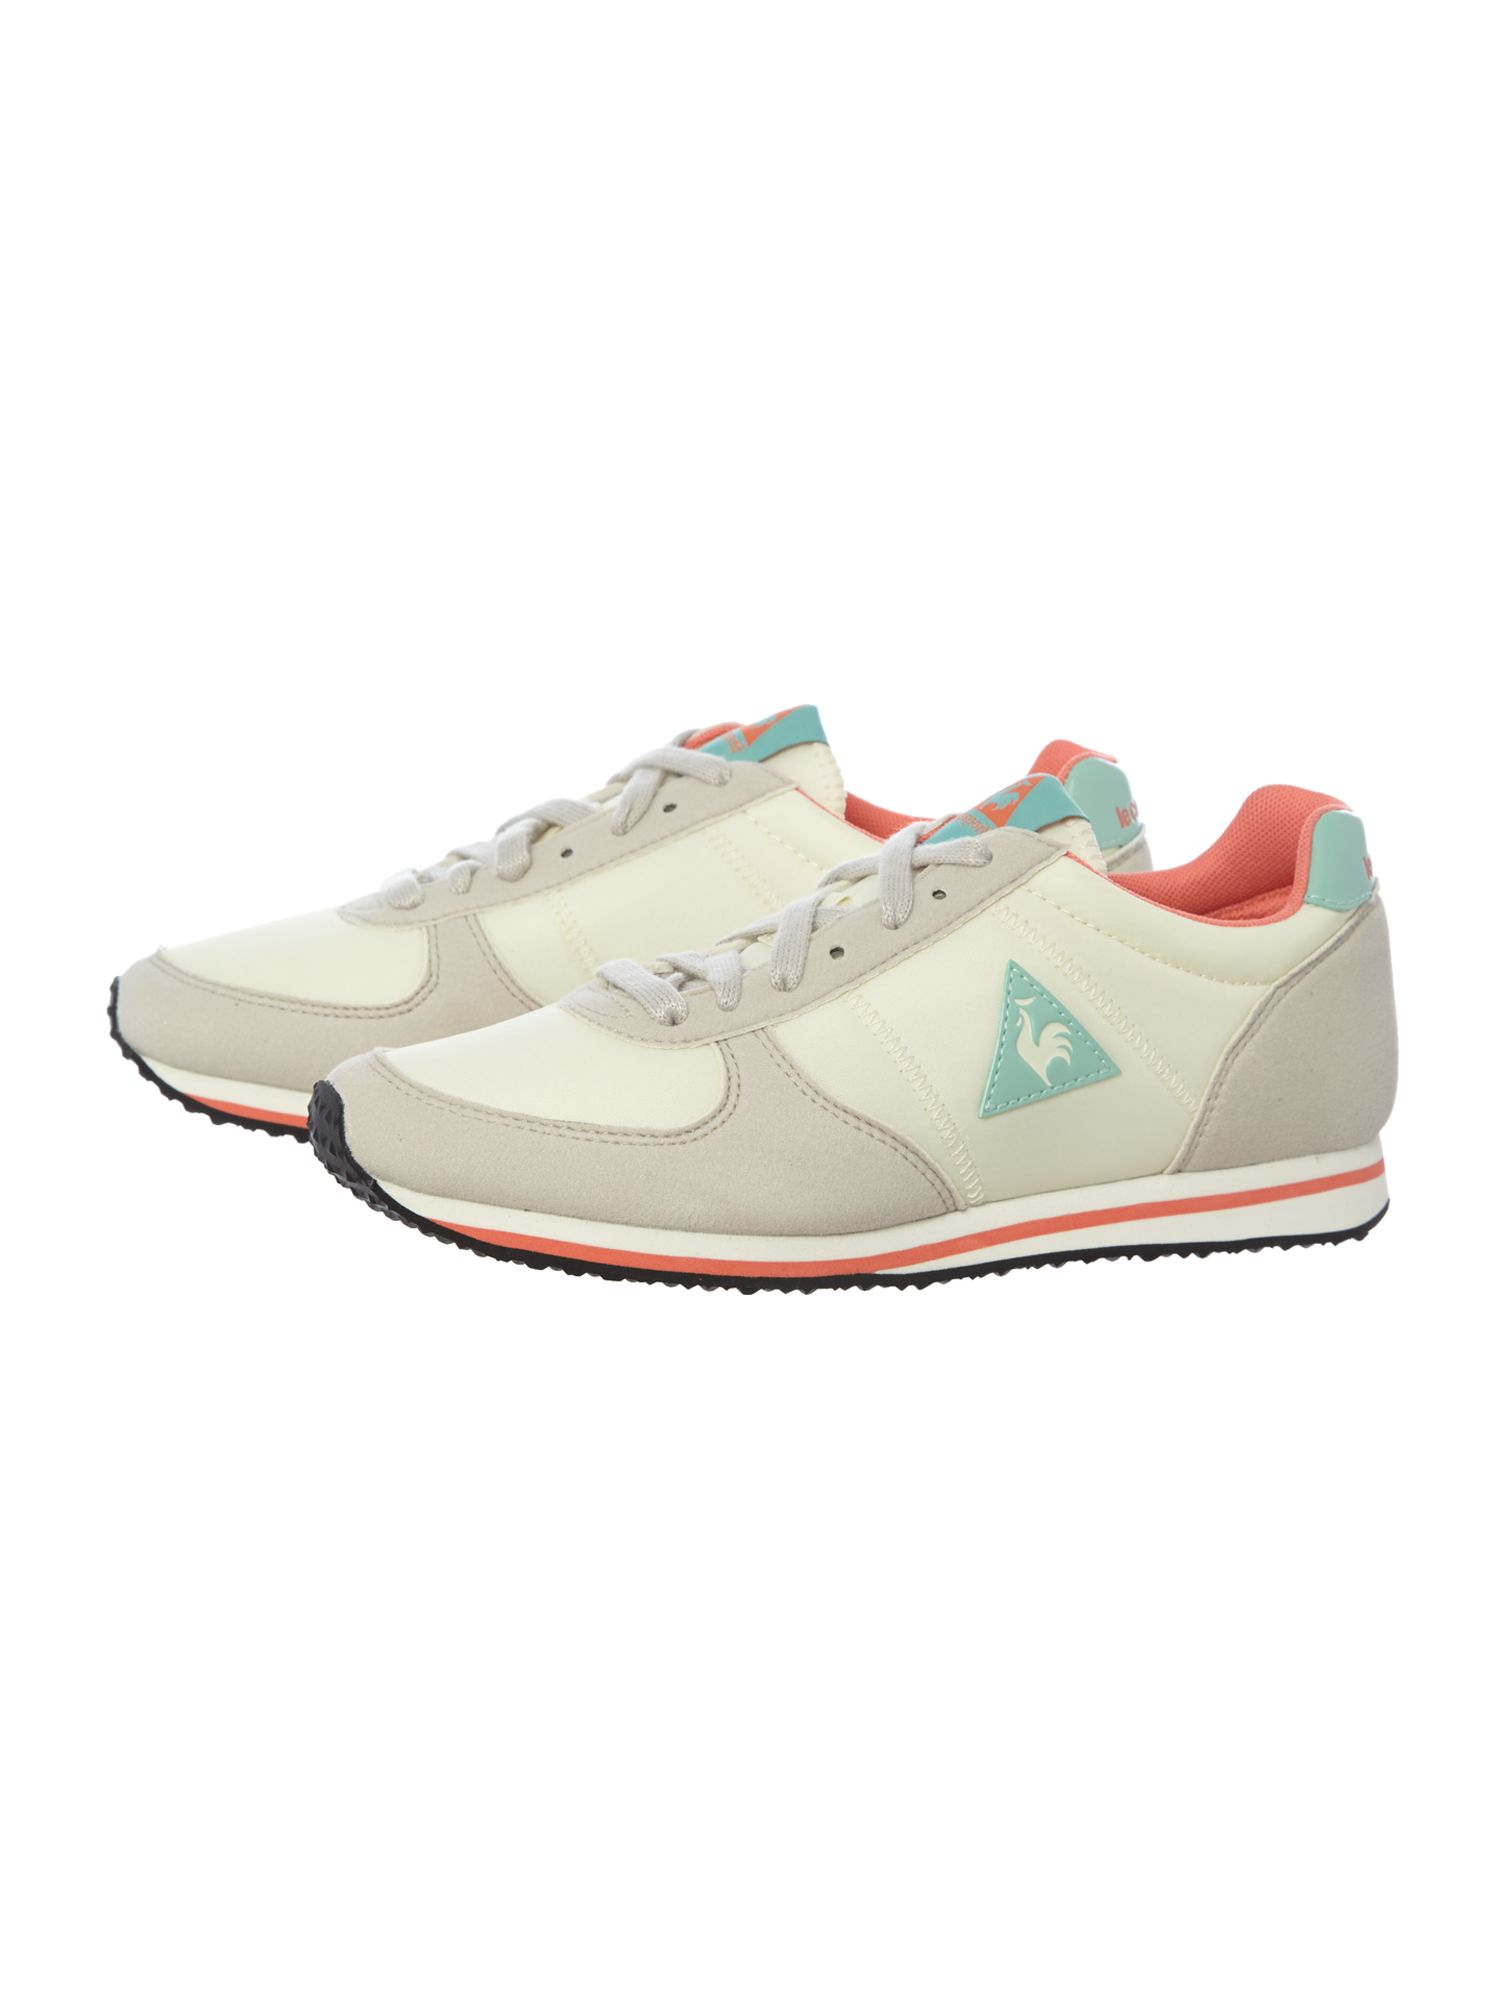 le coq sportif bolivar women running shoes in natural lyst. Black Bedroom Furniture Sets. Home Design Ideas